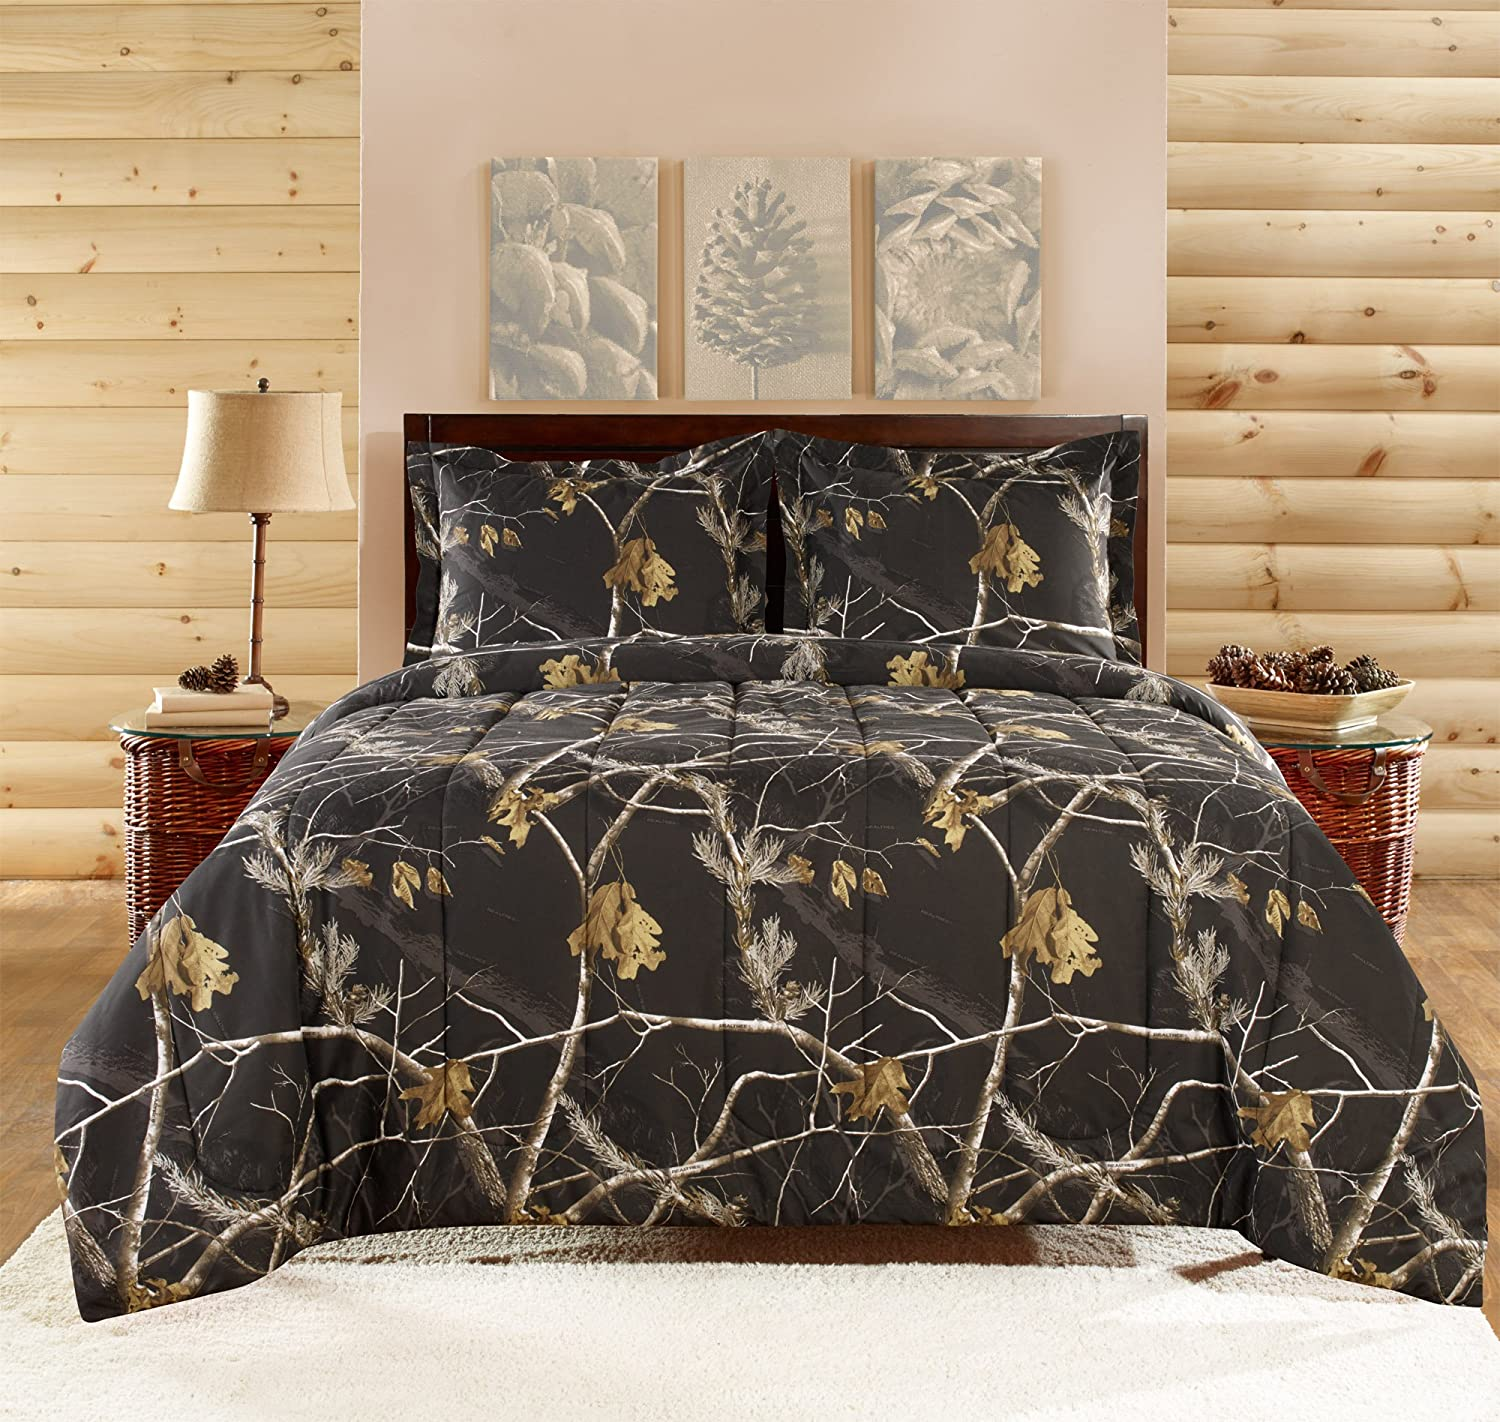 3 Piece Comforter Set, Queen, Bright Black